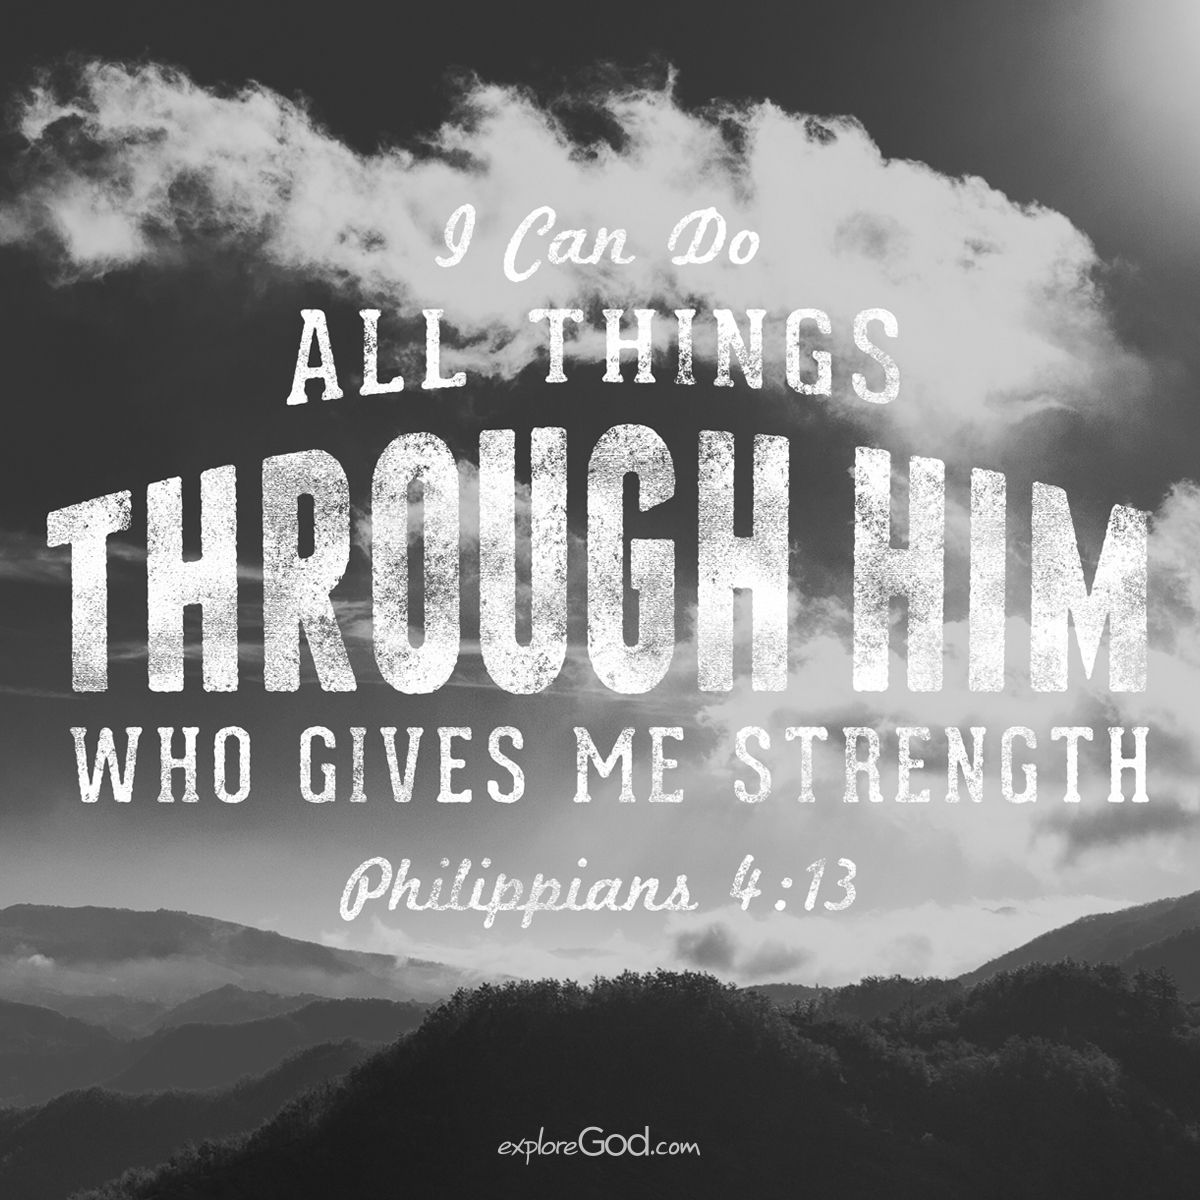 I Can Do All Things Through Him Who Gives Me Strength Philippians